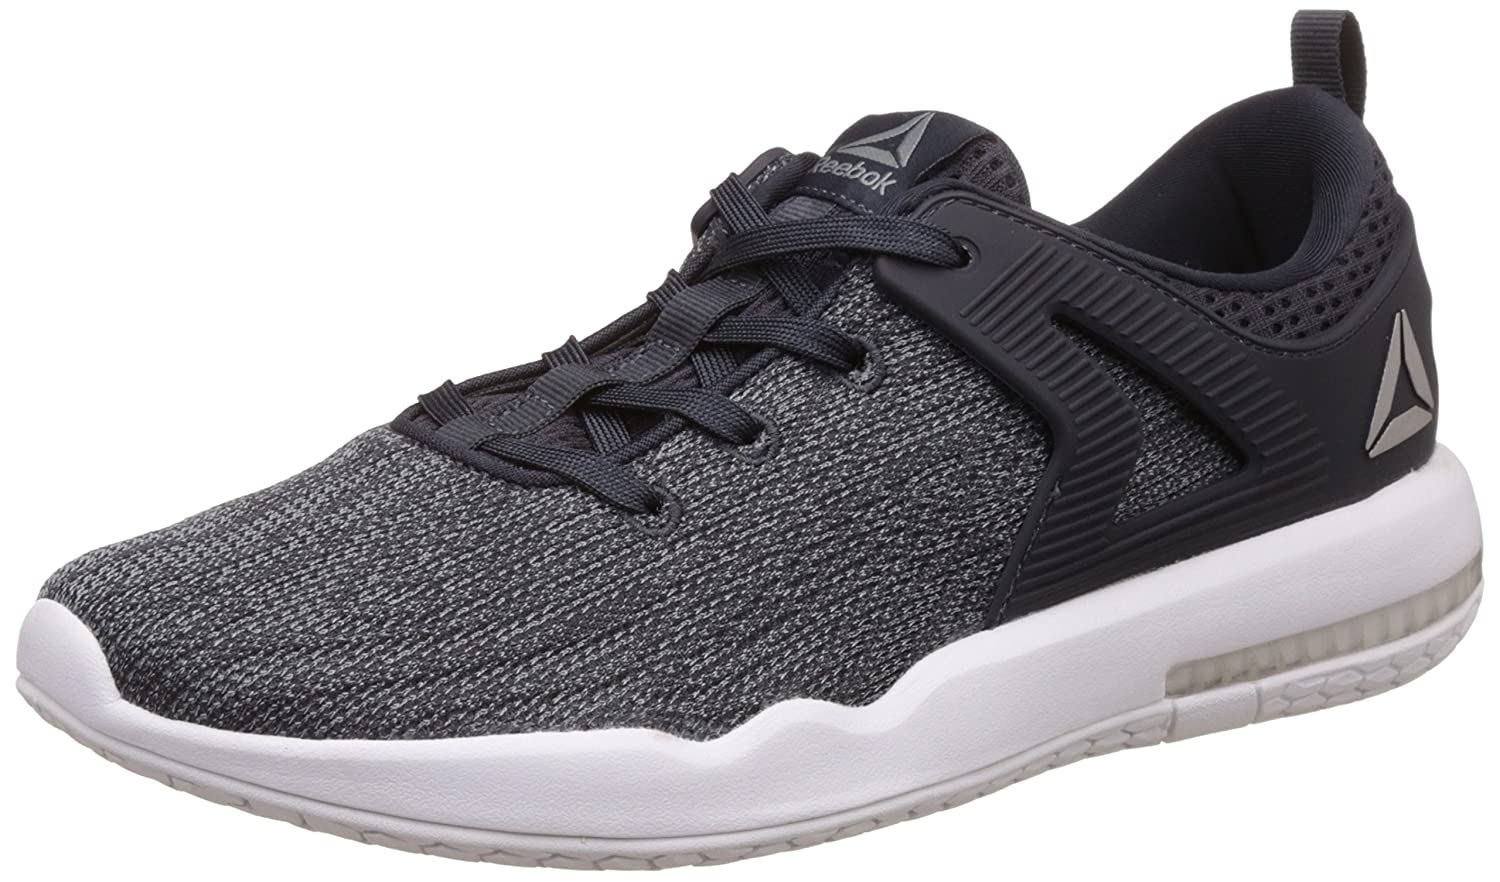 Reebok Men's Hexalite X Glide Dust, Lead, White and Pewter Running Shoes 6 UKIndia (39 EU)(7 US): Buy Online at Low Prices in India Amazon.in